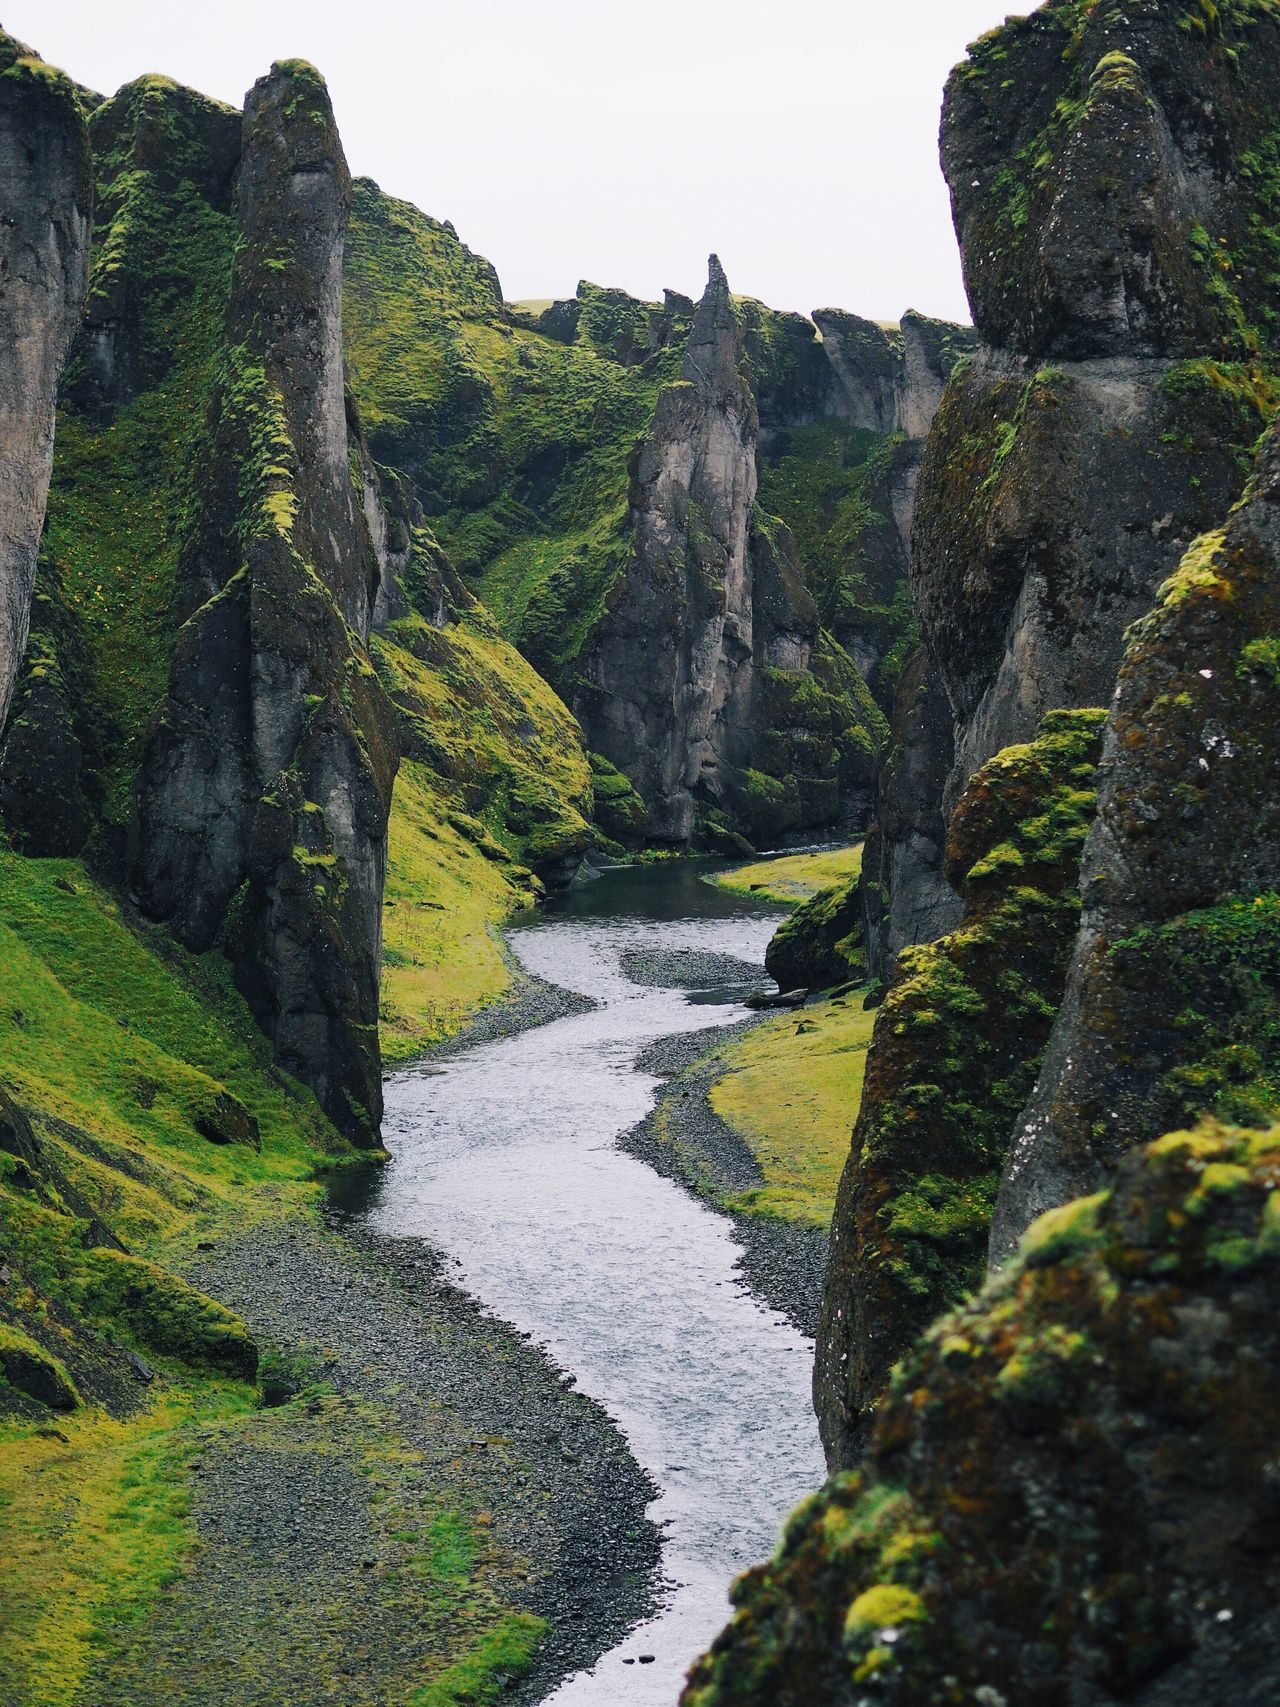 rock - object beauty in Nature landscape outdoors Nature water mountain river canyon at Fjadrargljufur Iceland miles away